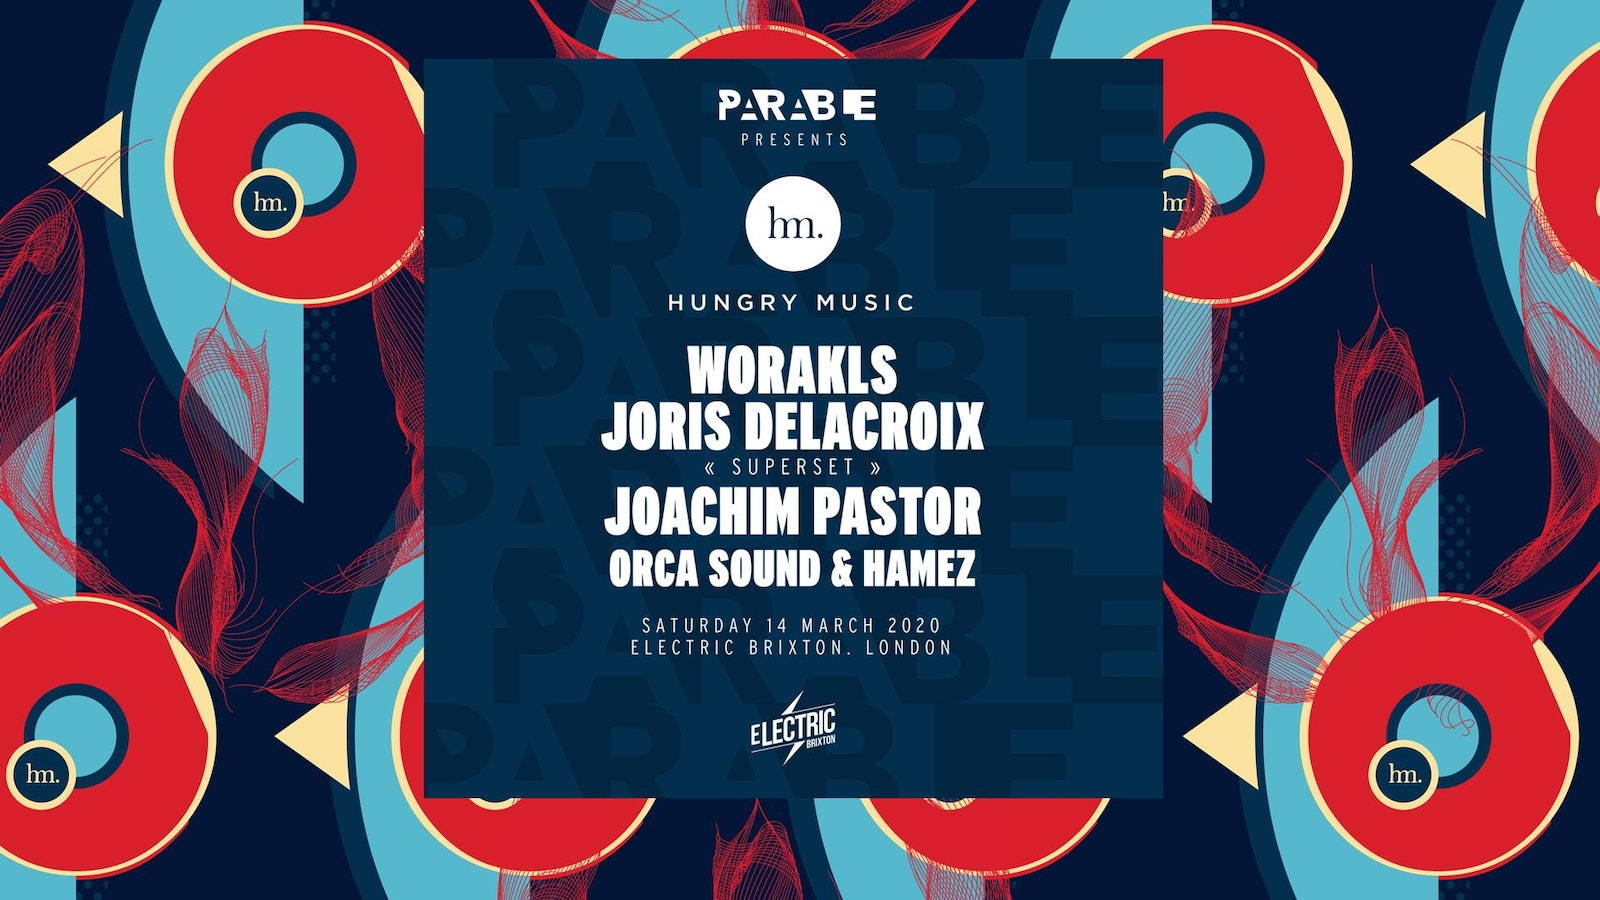 Hungry Music x Parable – Worakls, Joris Delacroix, Joachim Pastor & More